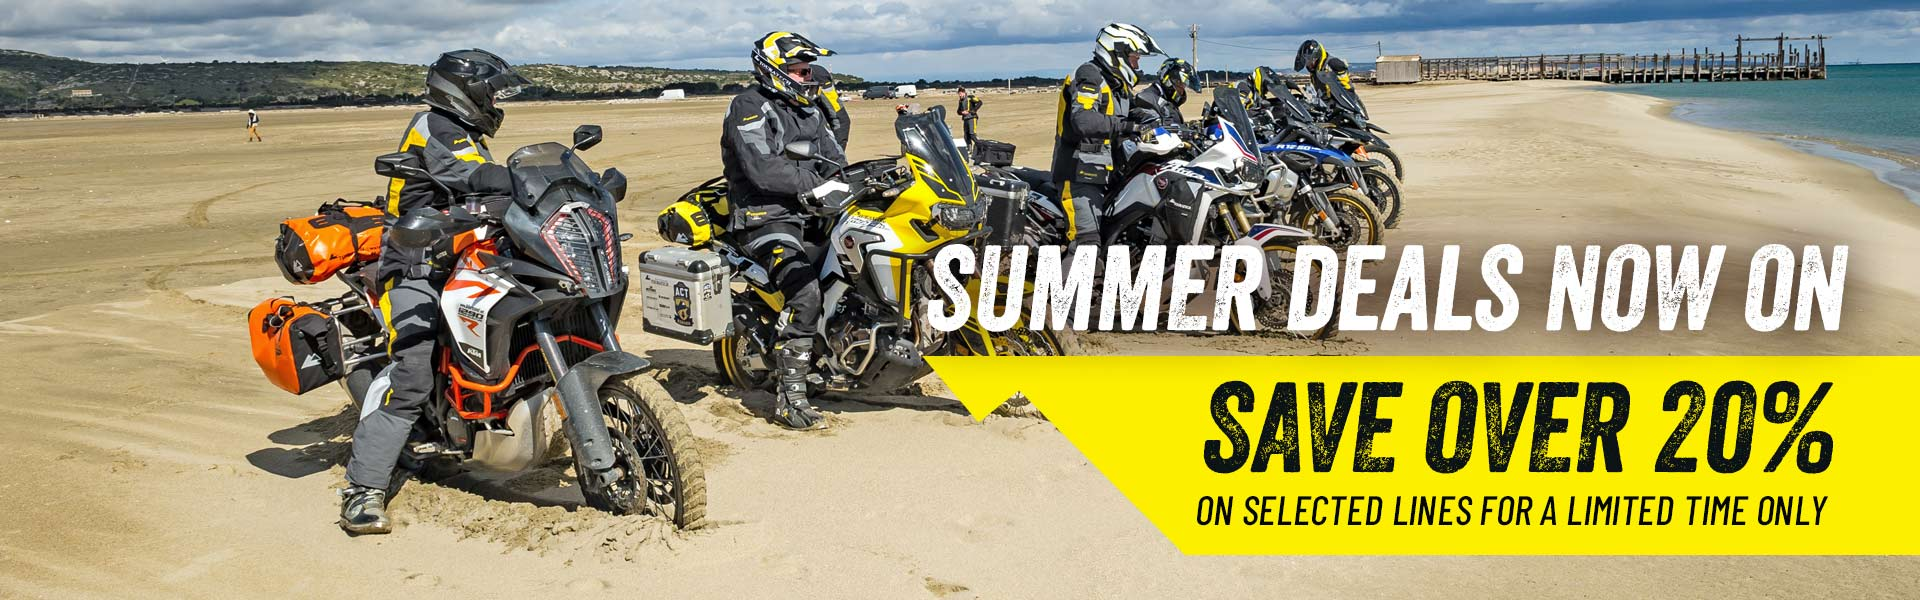 summer deals - save over20% for a limited time only